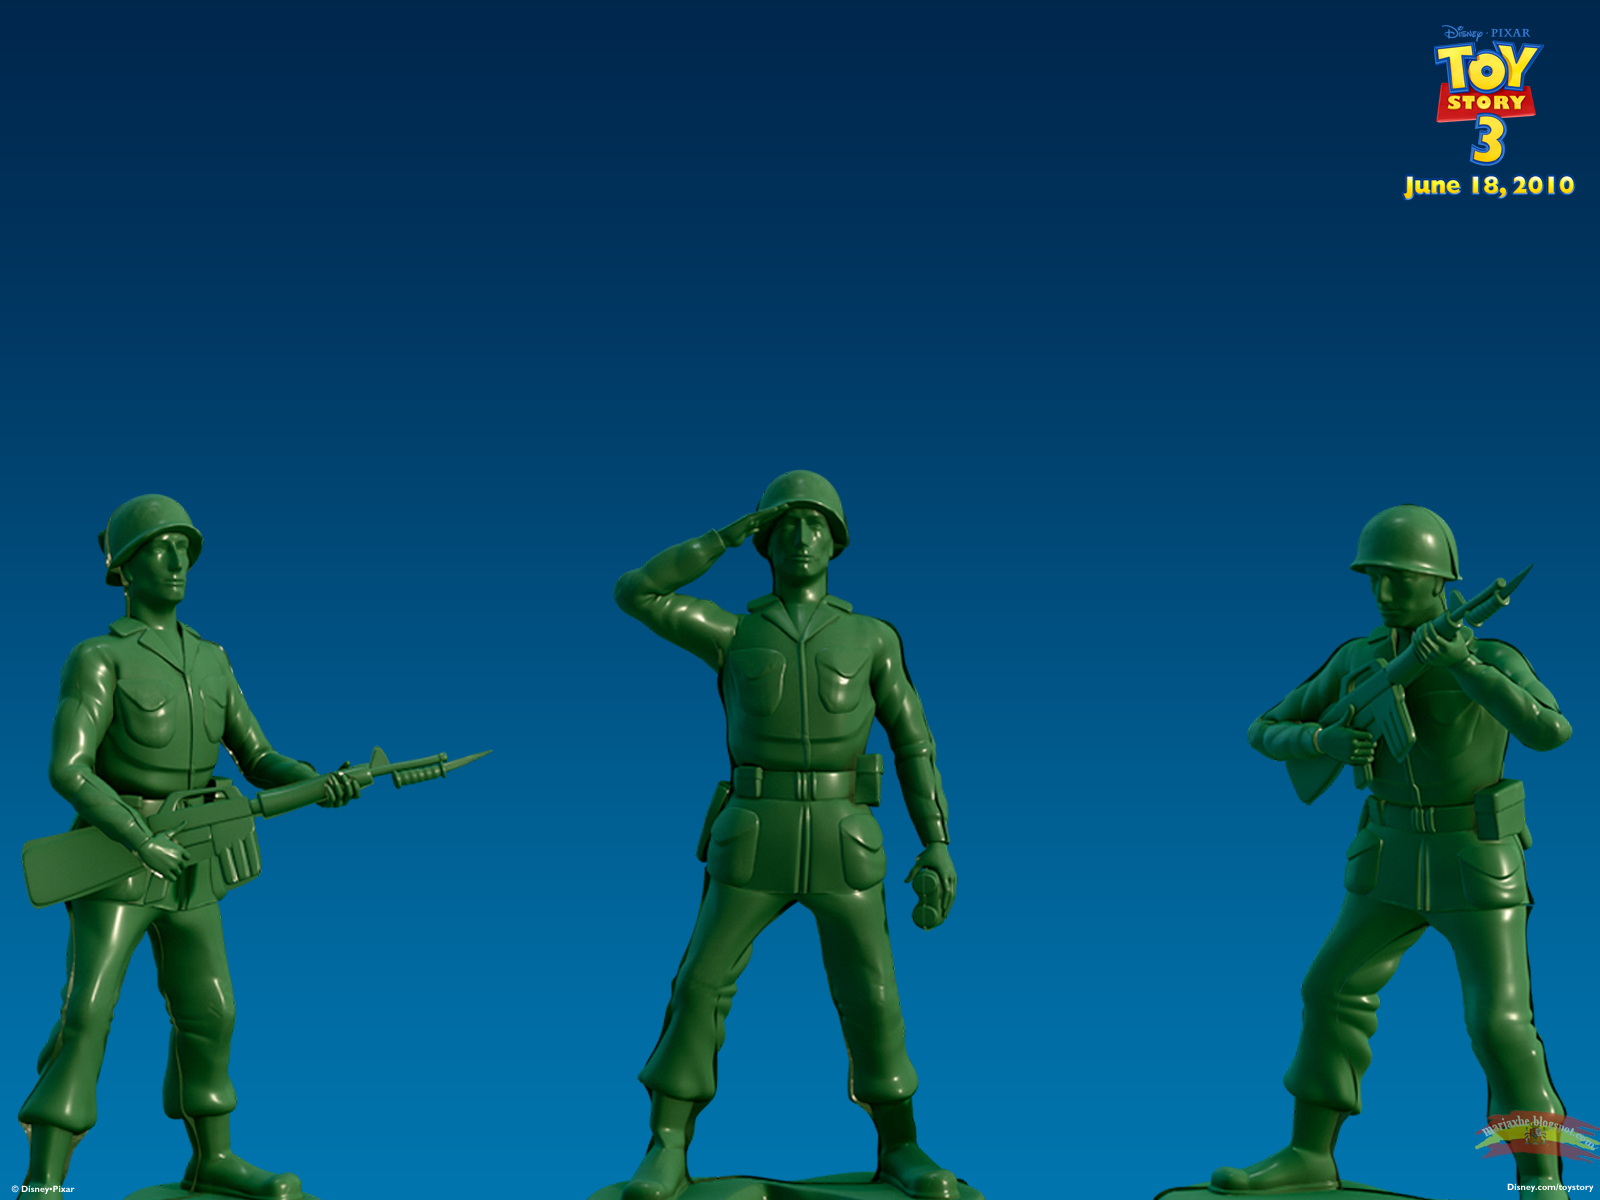 Soldiers clipart toy story Wikia Army Army Wiki powered